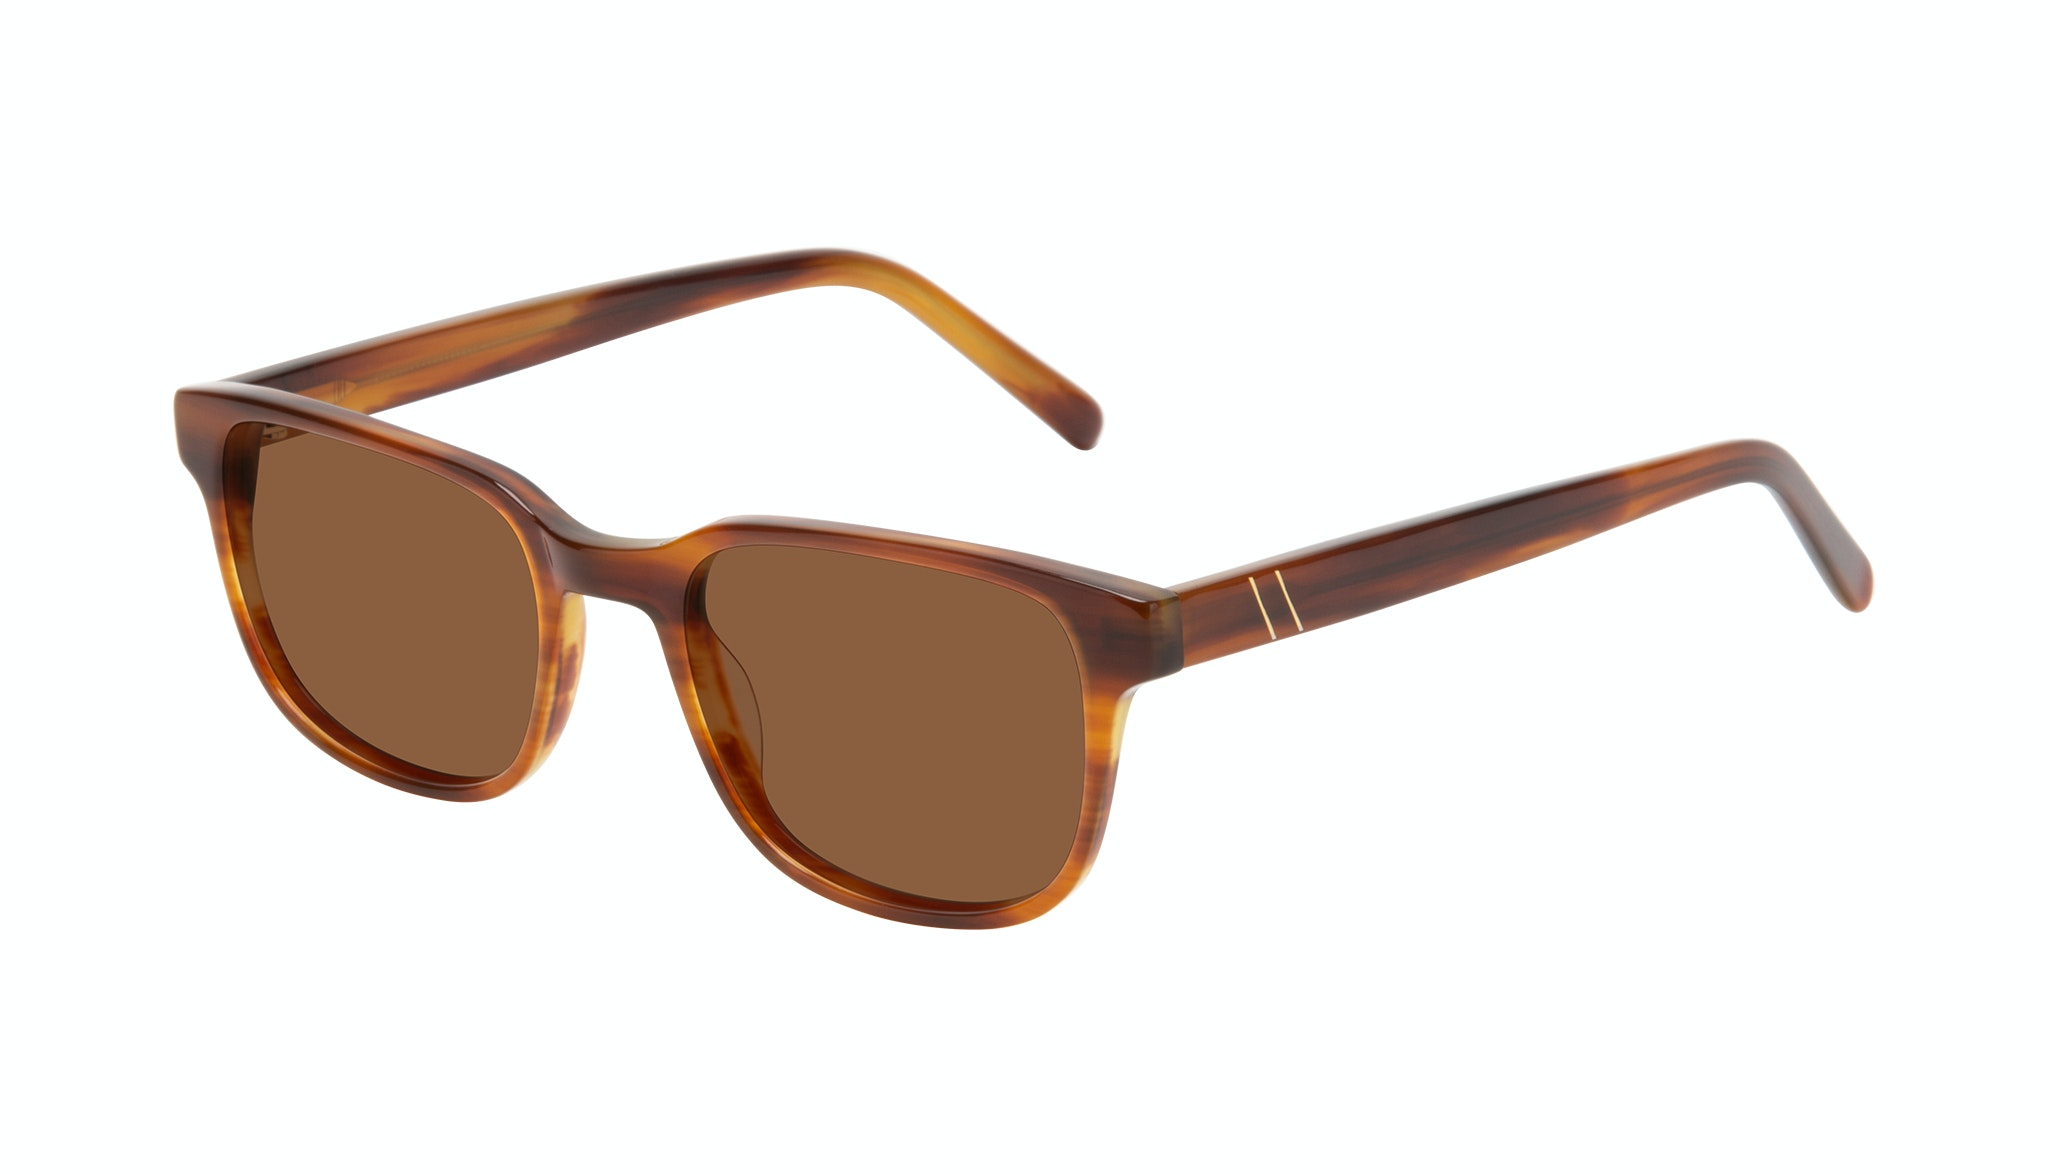 Affordable Fashion Glasses Square Sunglasses Men Role Havana Tilt